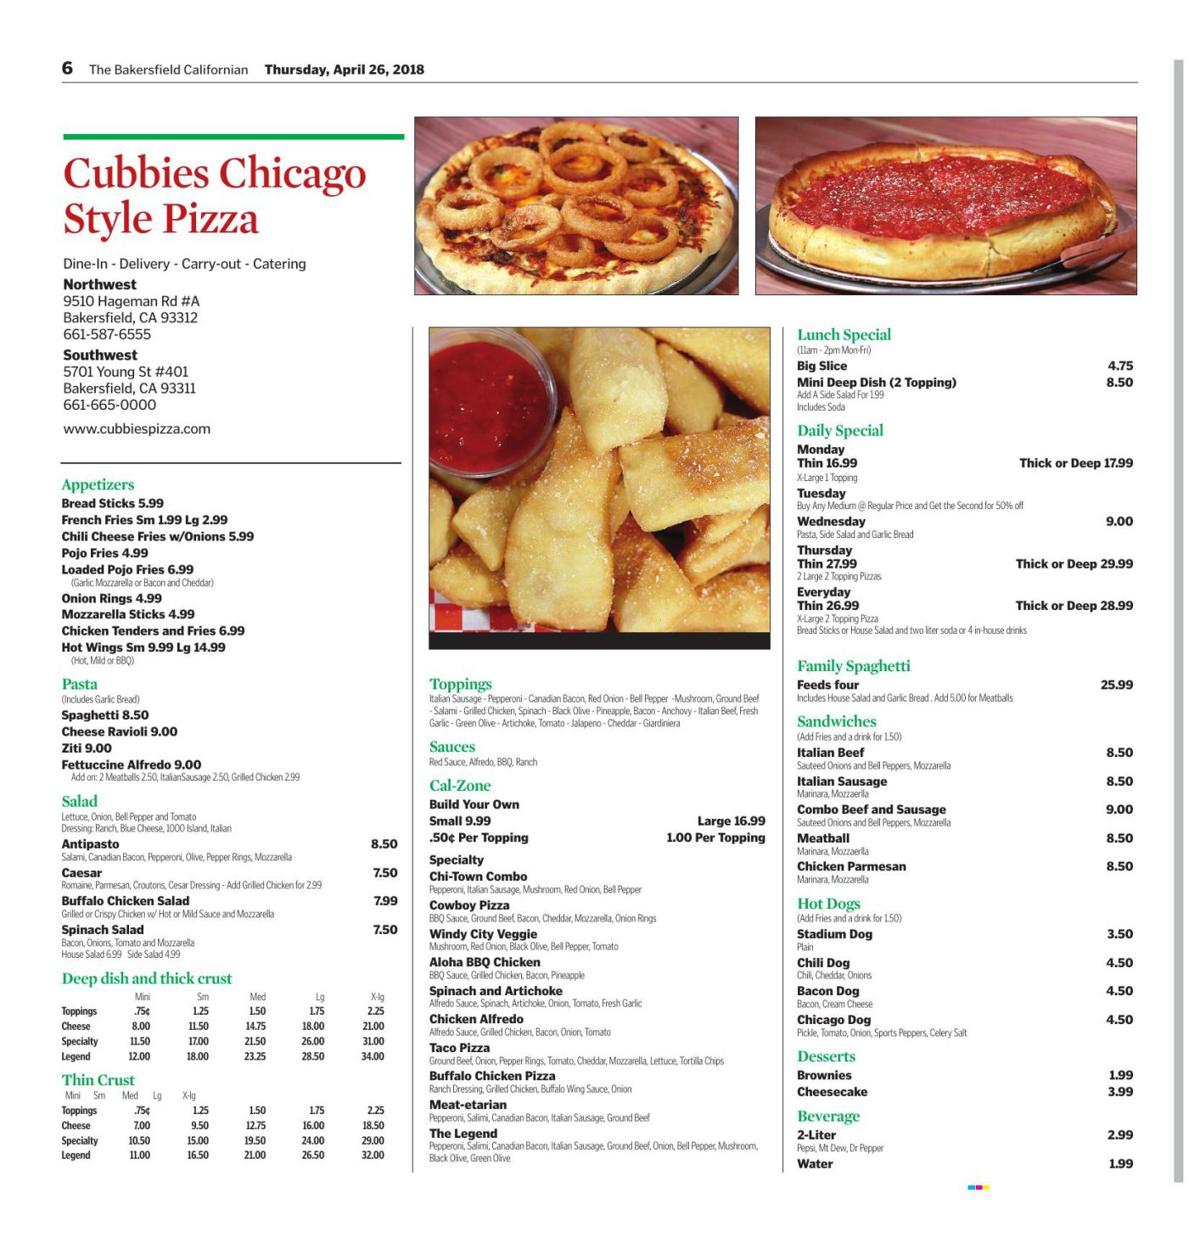 Cubbies Chicago Style Pizza